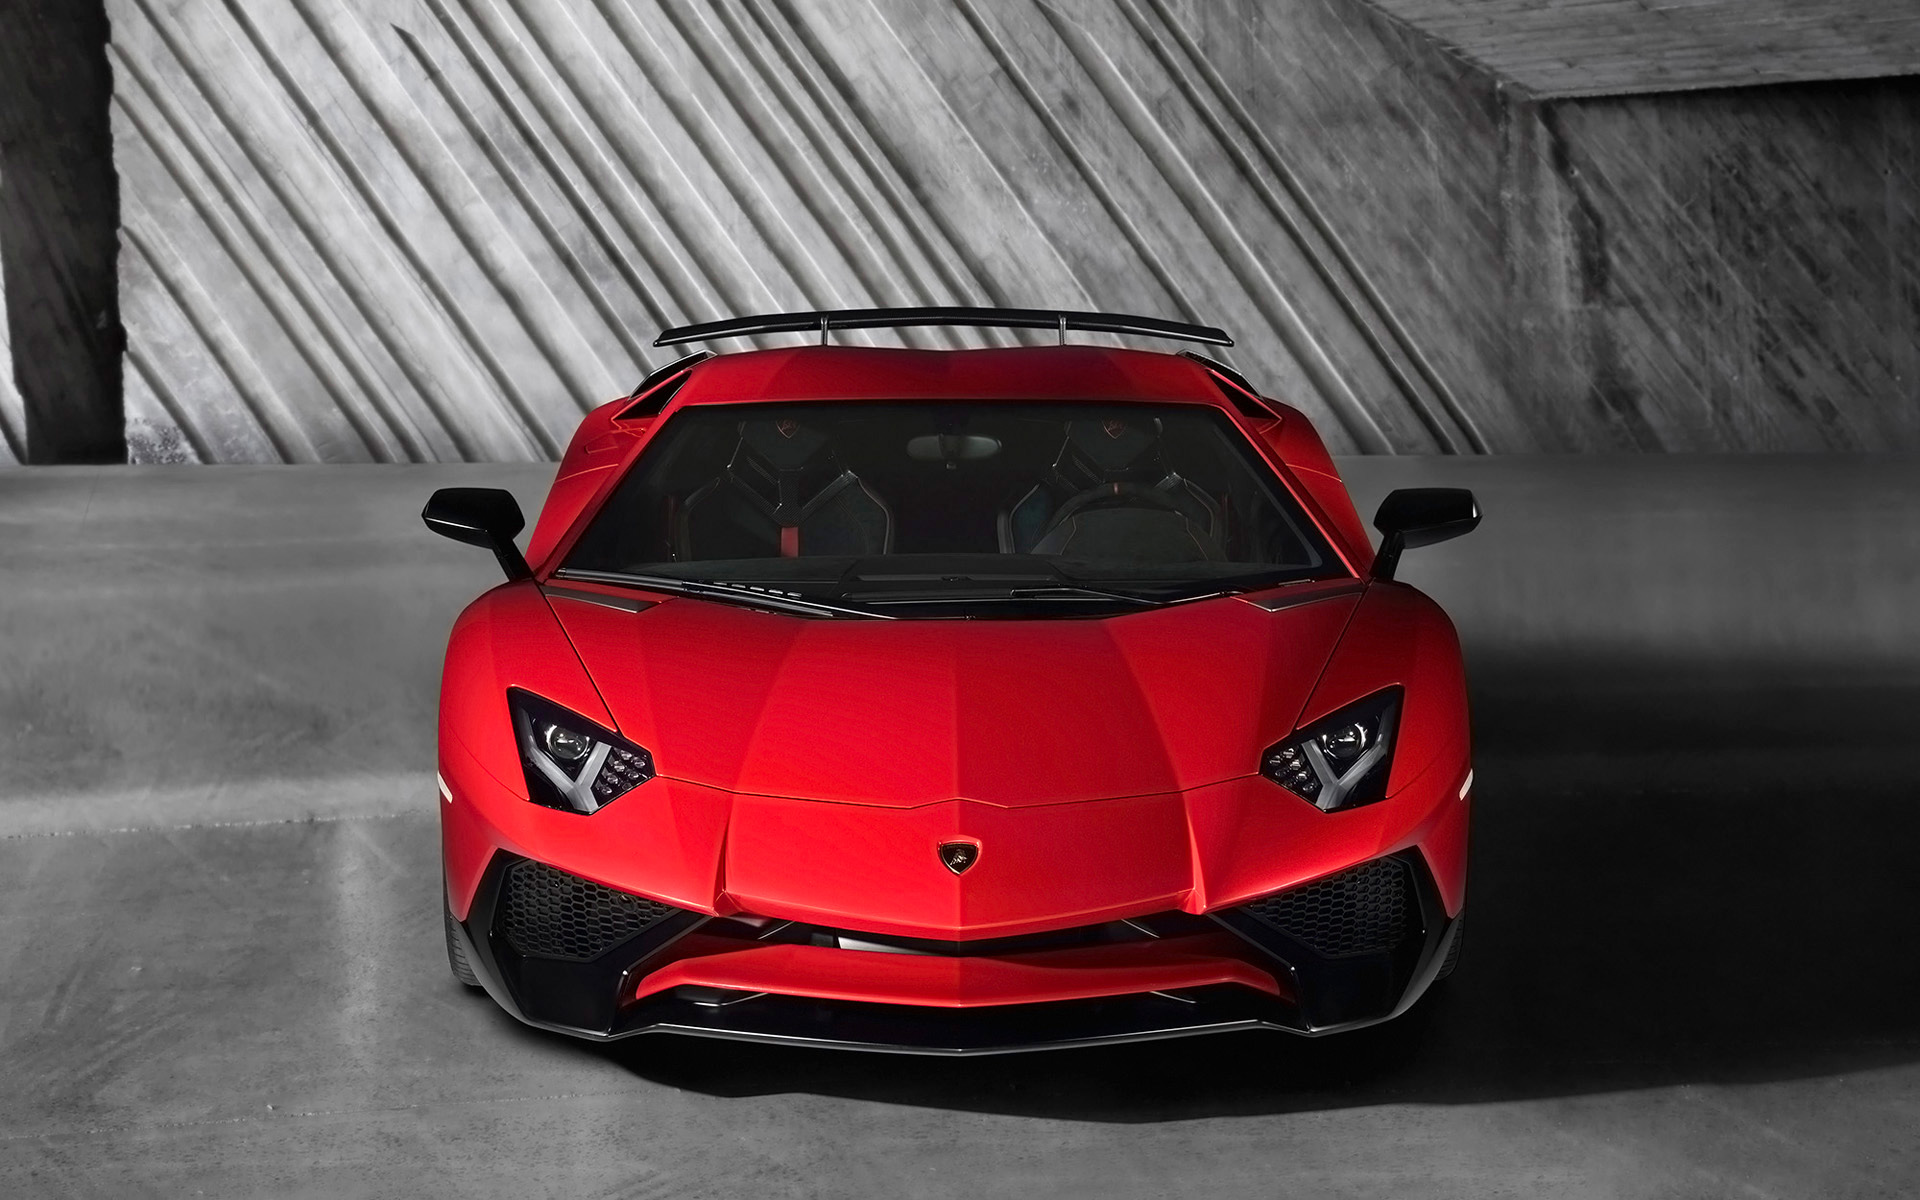 Lamborghini Aventador Wallpapers A7